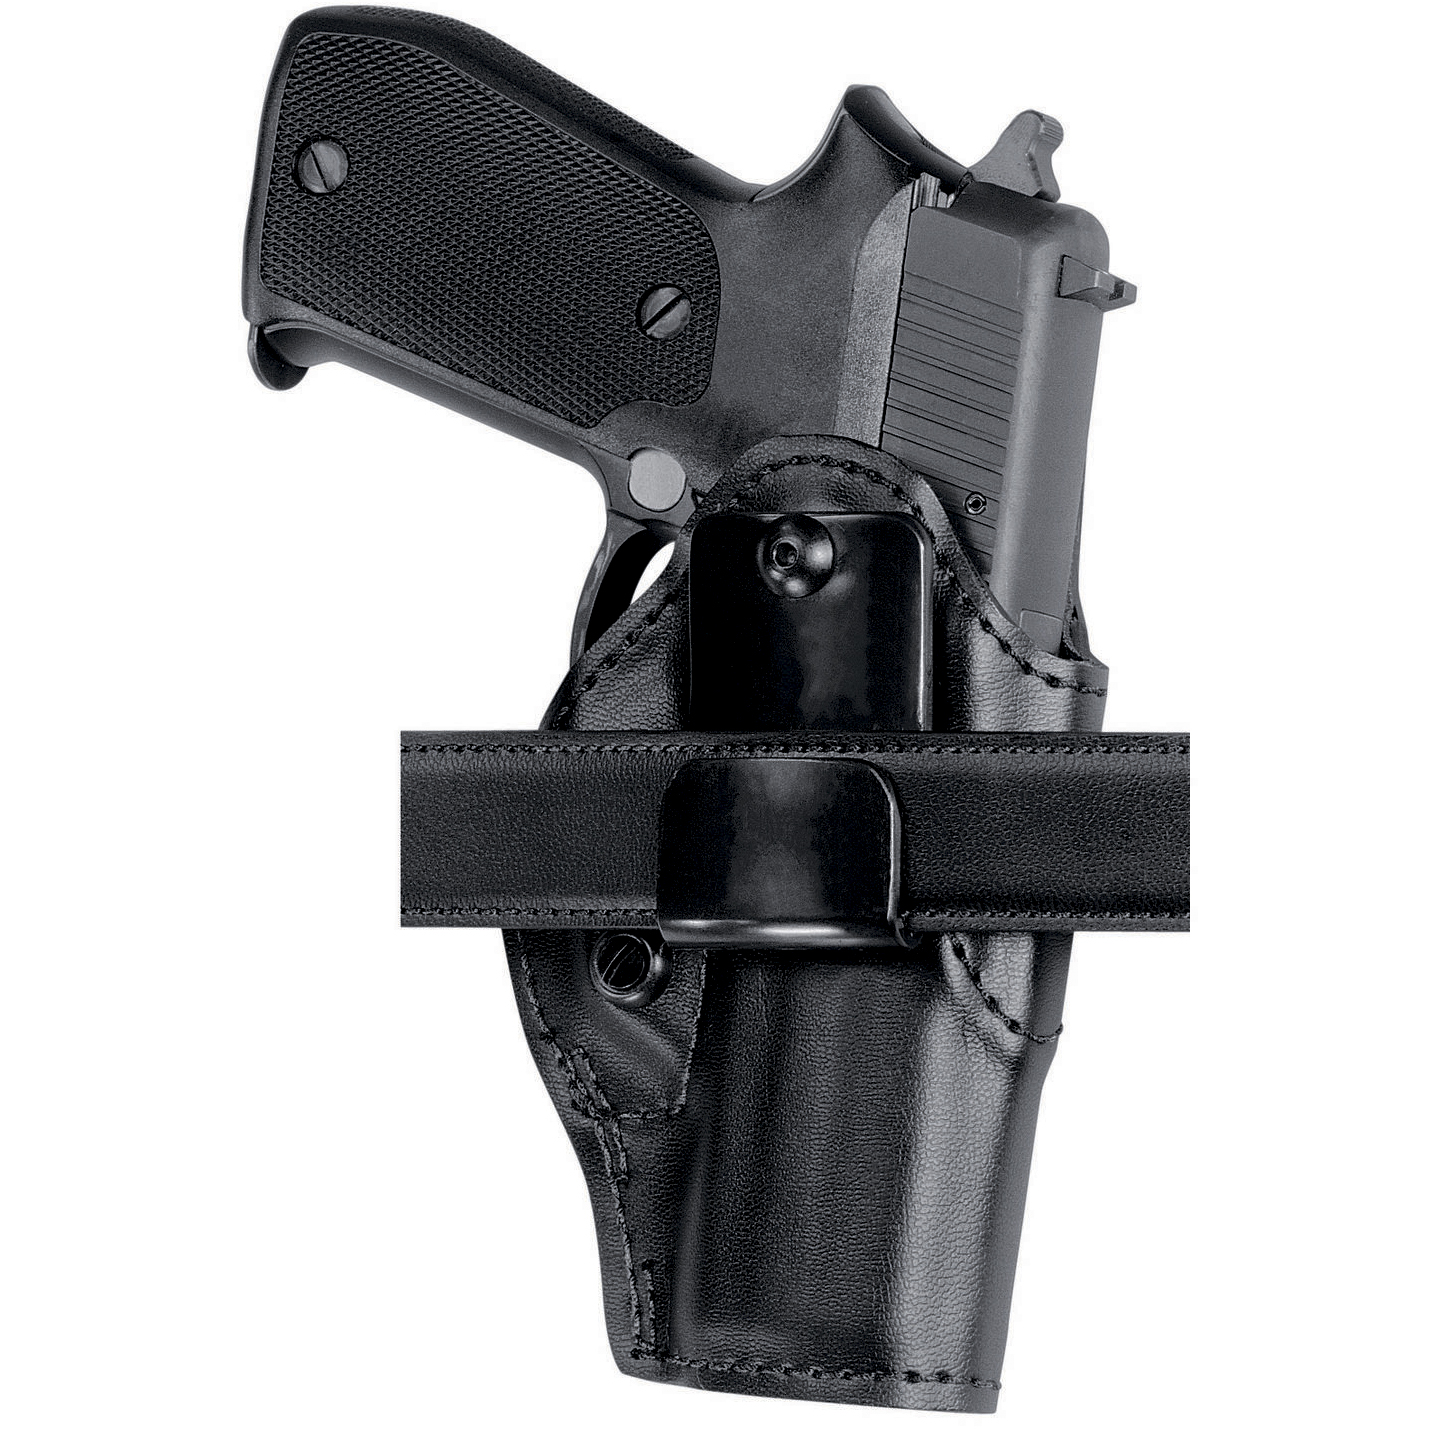 Safariland Model 27 Inside-the-Pants Concealment Holster, S & W M & P Shield 9/40